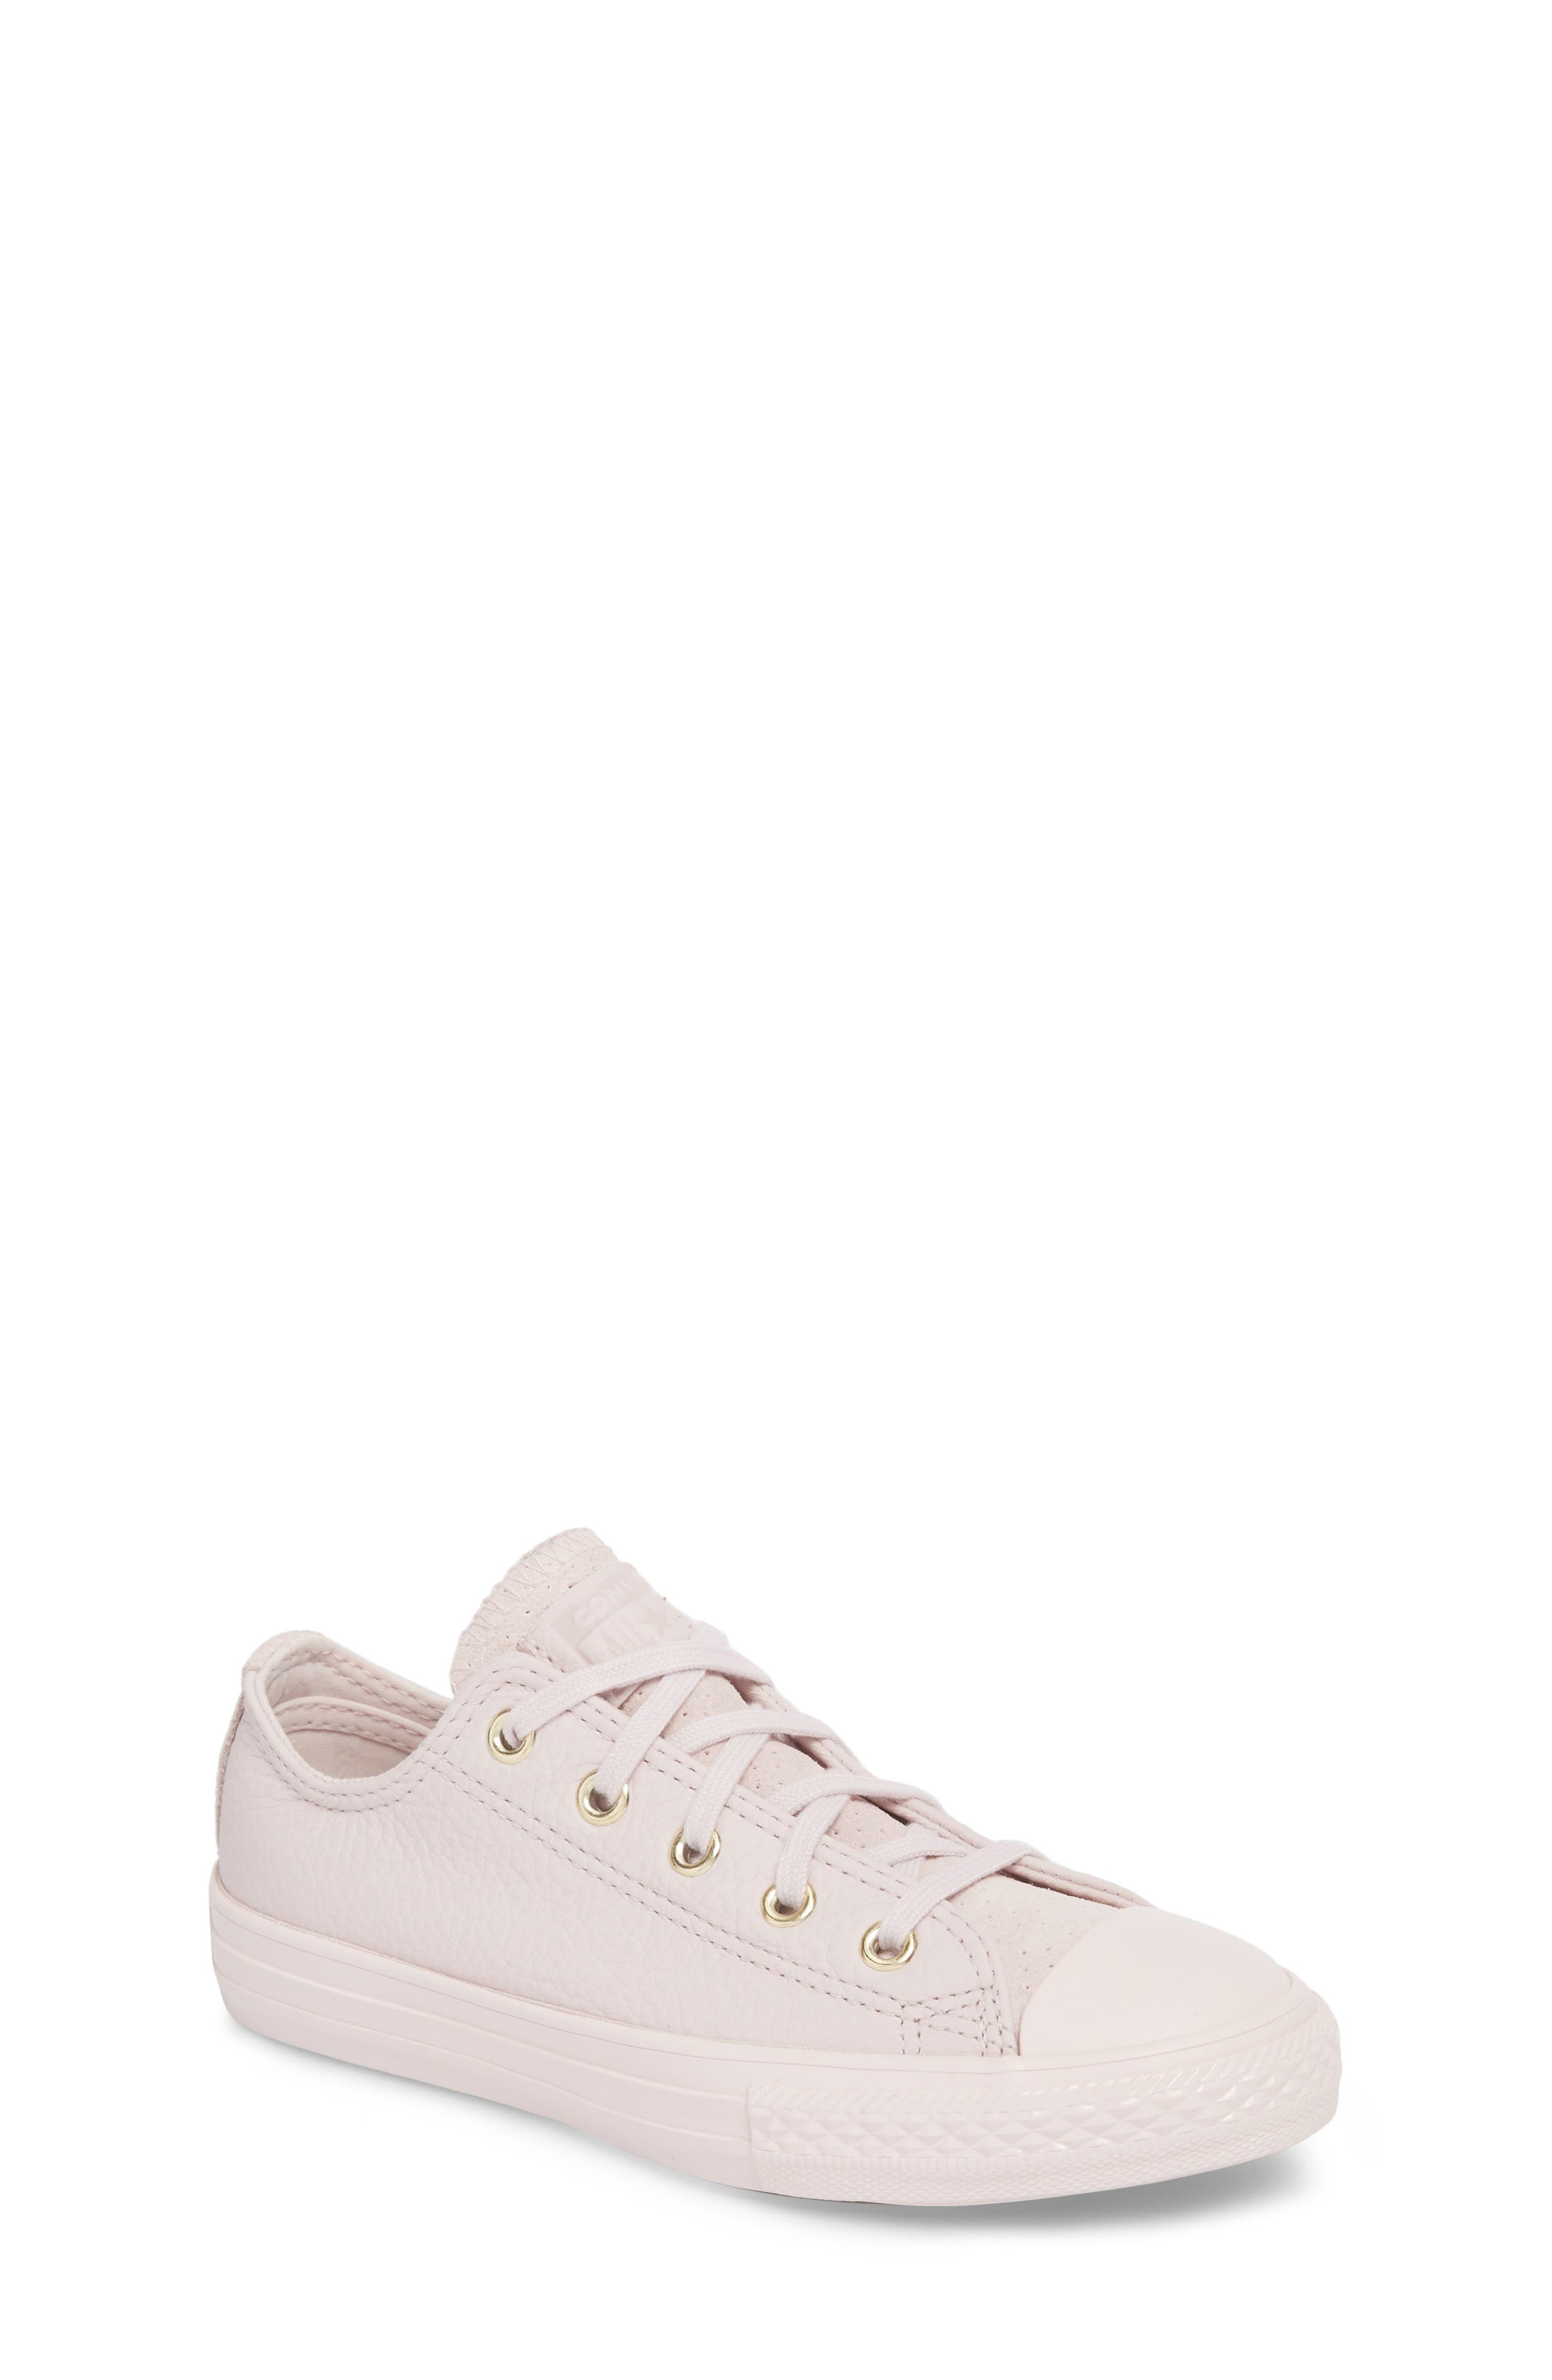 Chuck Taylor<sup>®</sup> All Star<sup>®</sup> Mono Low Top Sneaker,                             Main thumbnail 1, color,                             Pulse